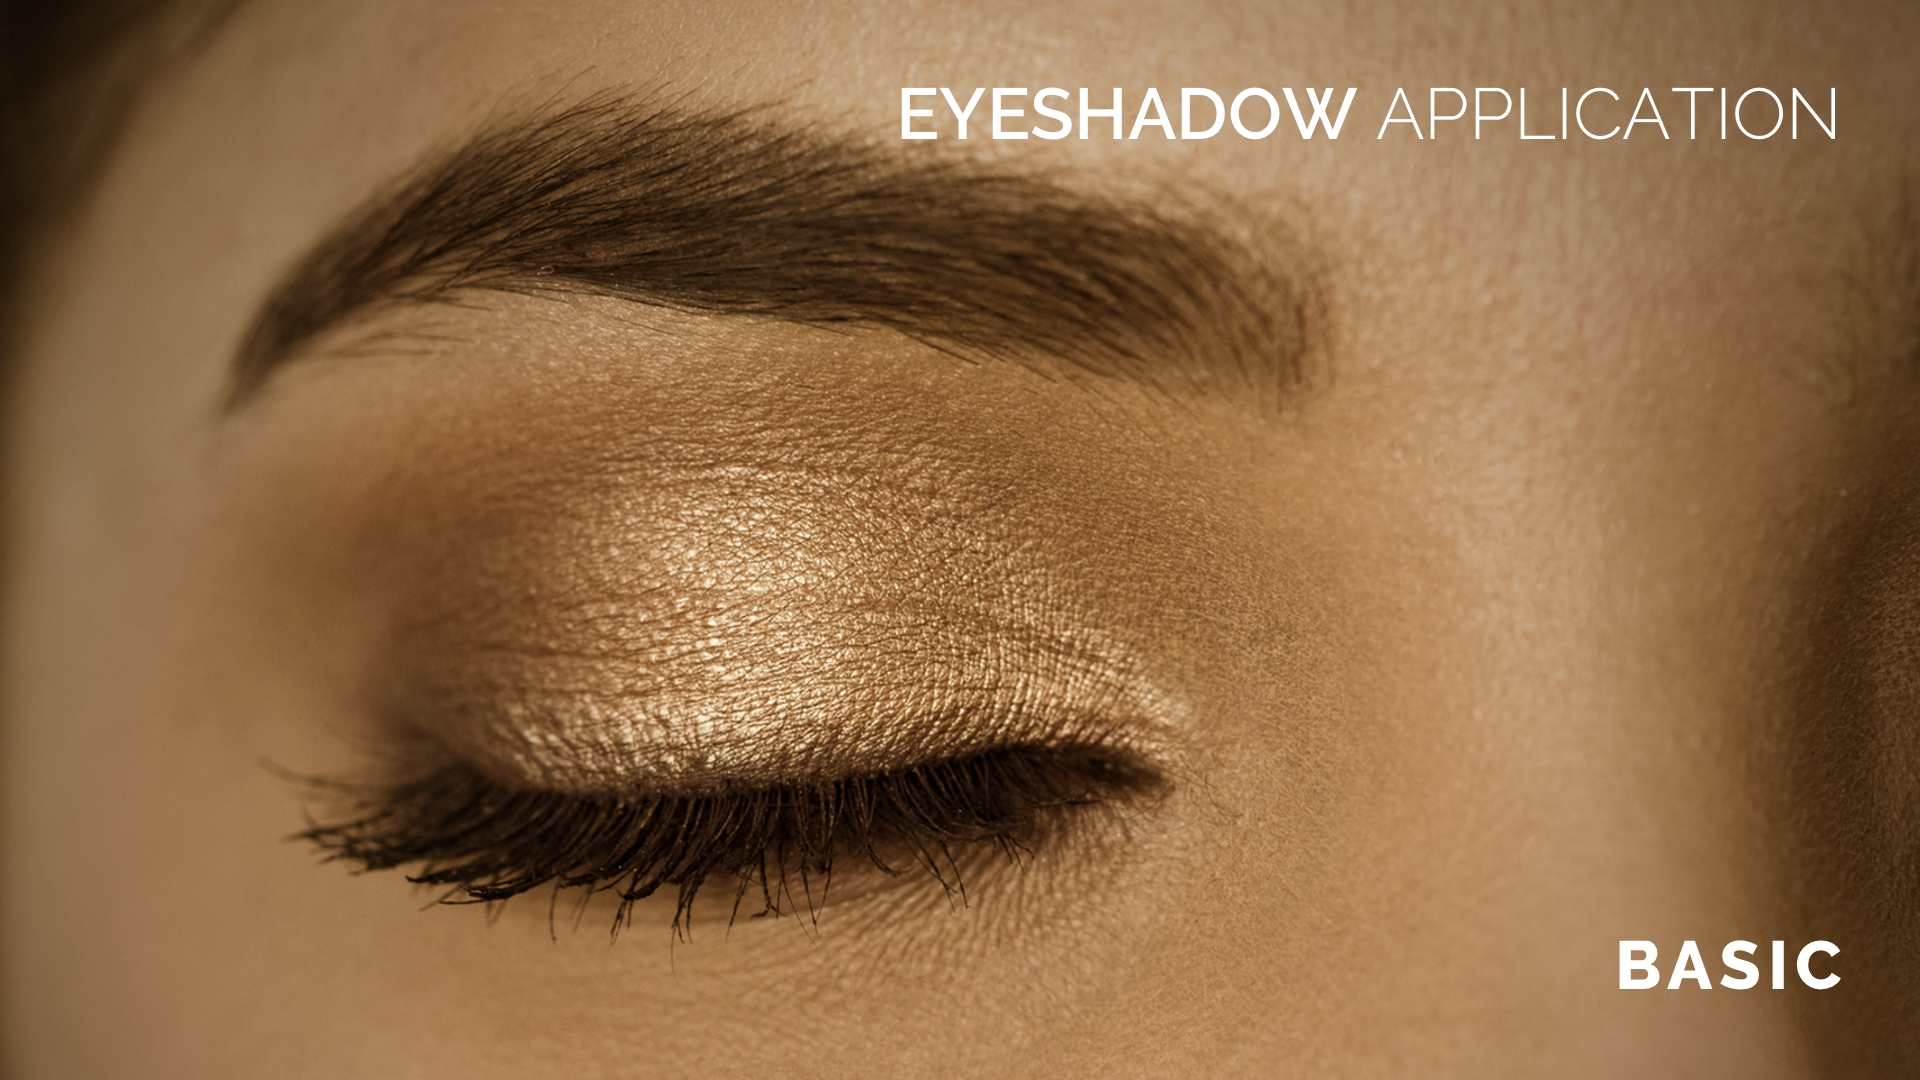 Basic Eyeshadow Application